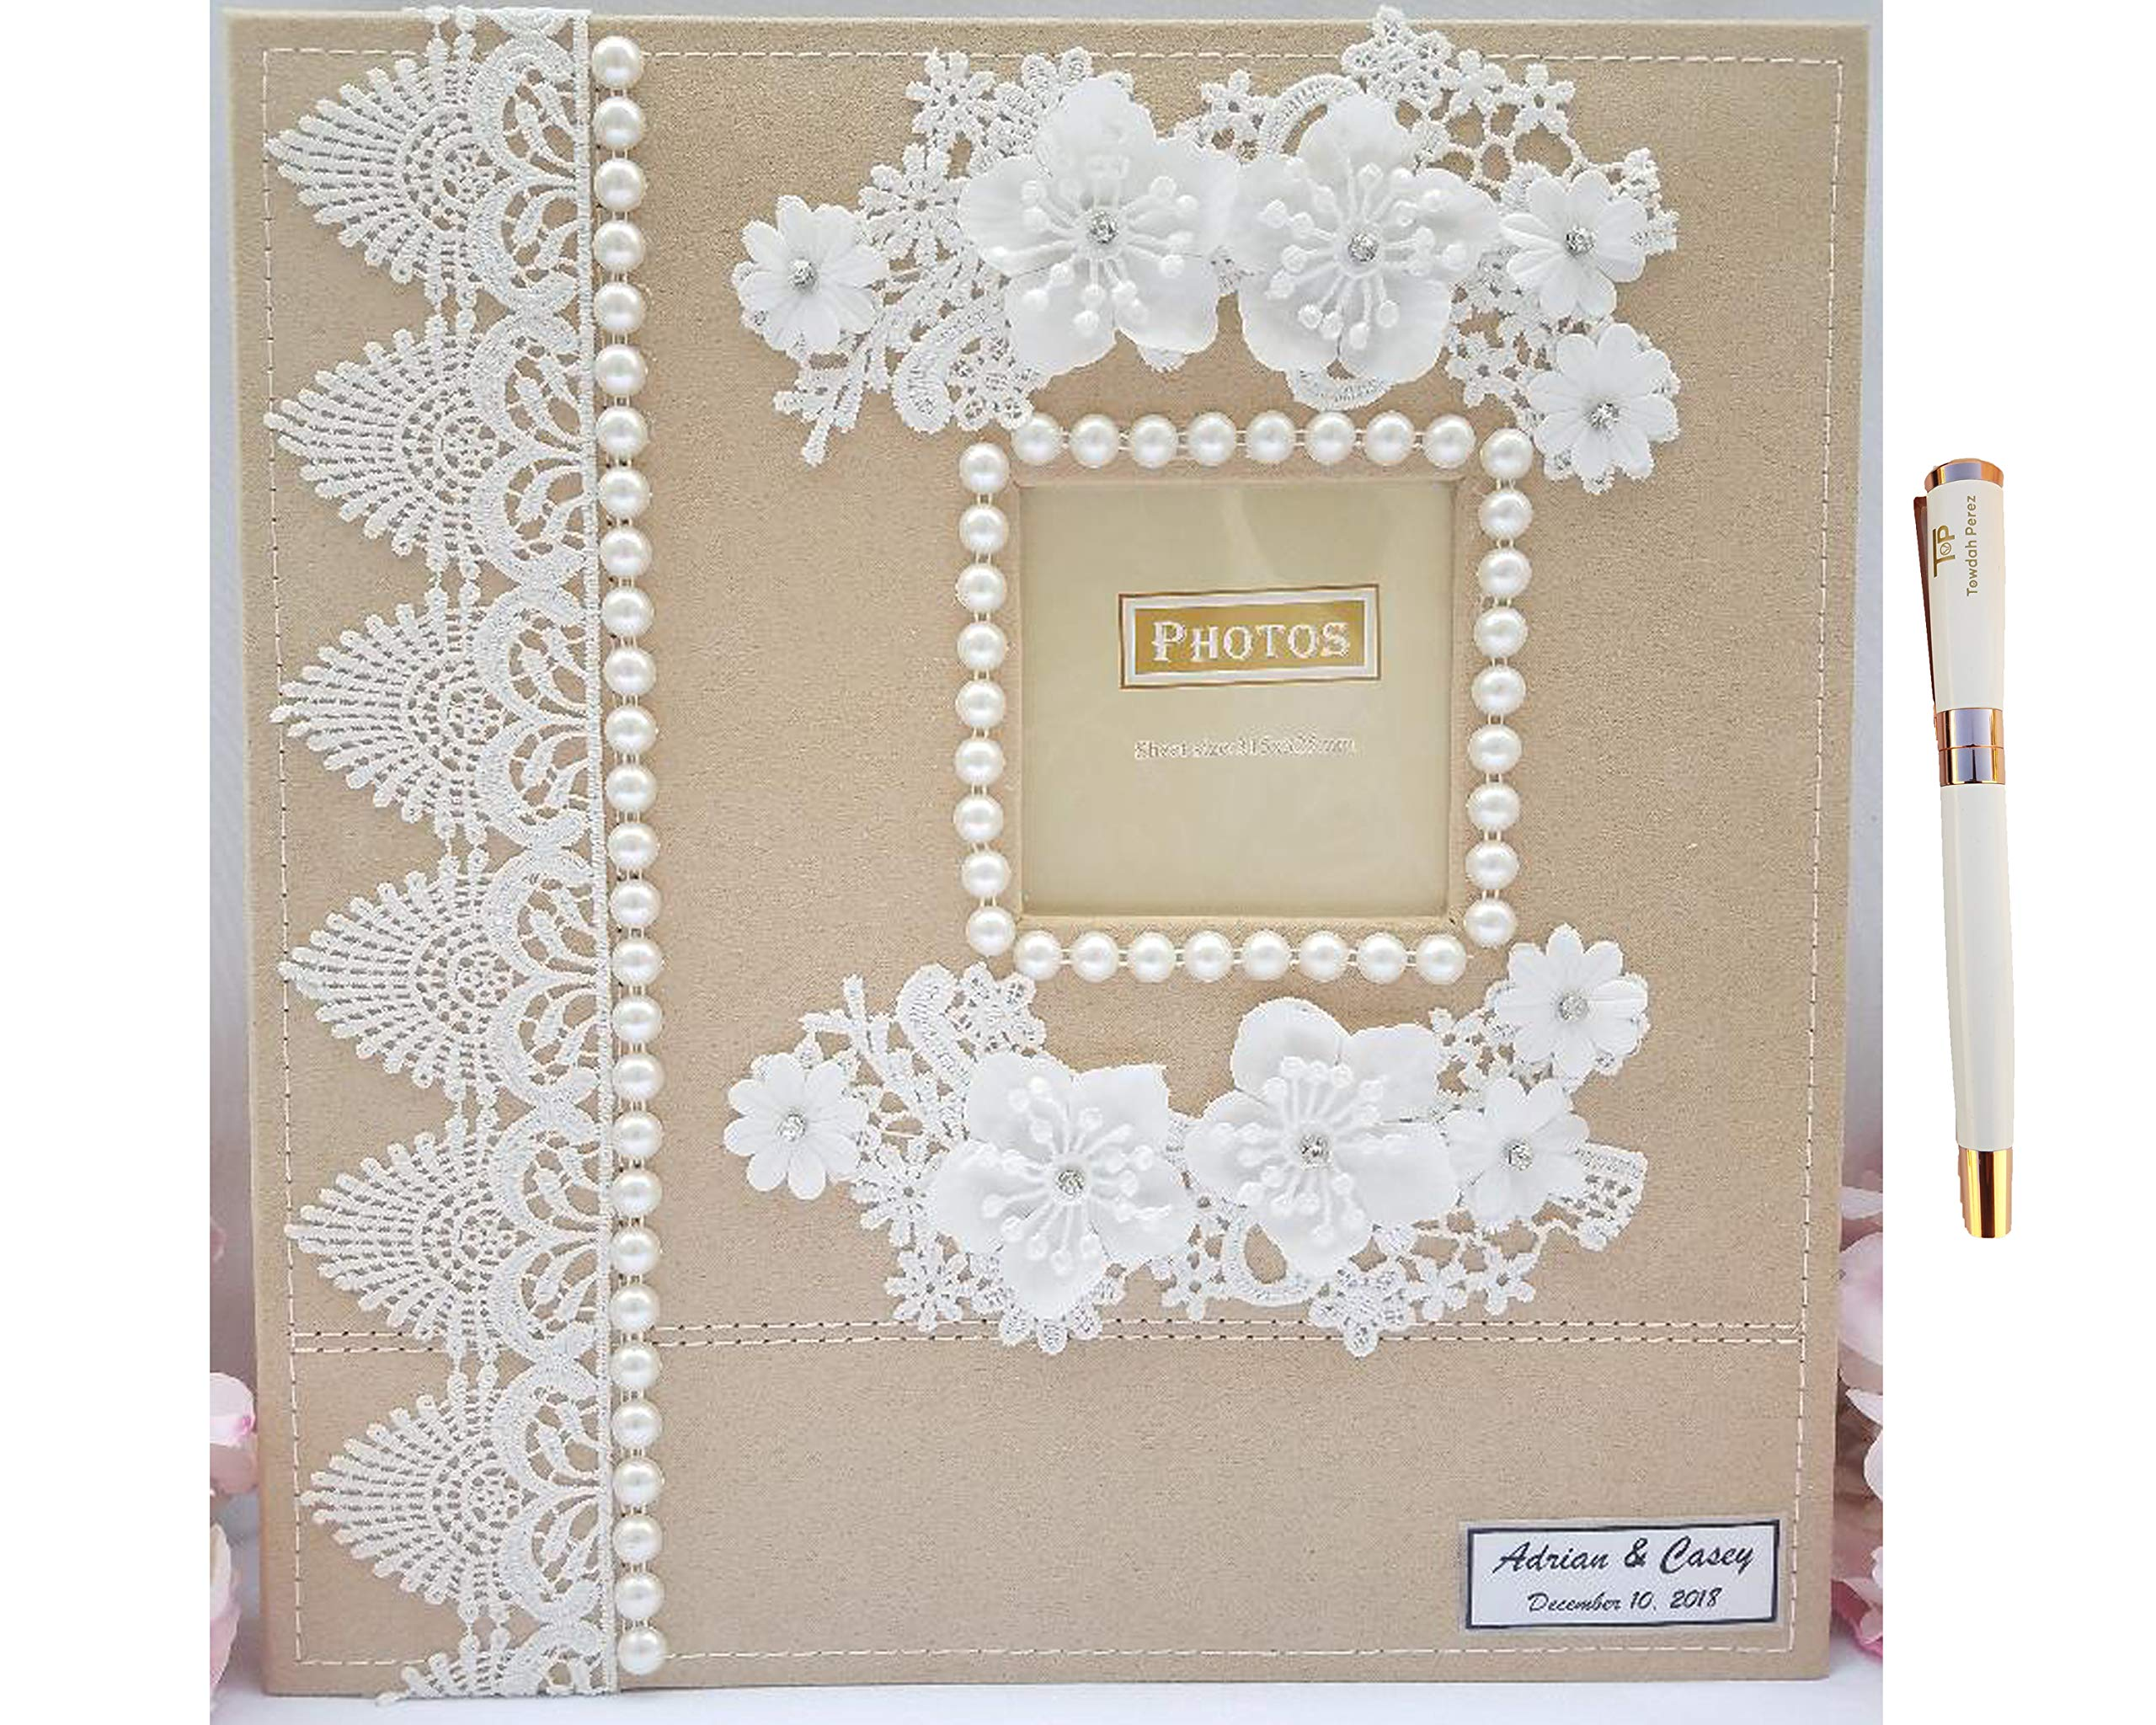 Towdah Perez Pearls Flower lace self Stick Wedding Album 80 Pages. Hand-Decorated Fabric Cover Album; 3x5, 4x6, 5x7, 8x10 Photos with Gift Box, Luxury White/Gold Pen. Customizable and personalizable by Towdah Perez